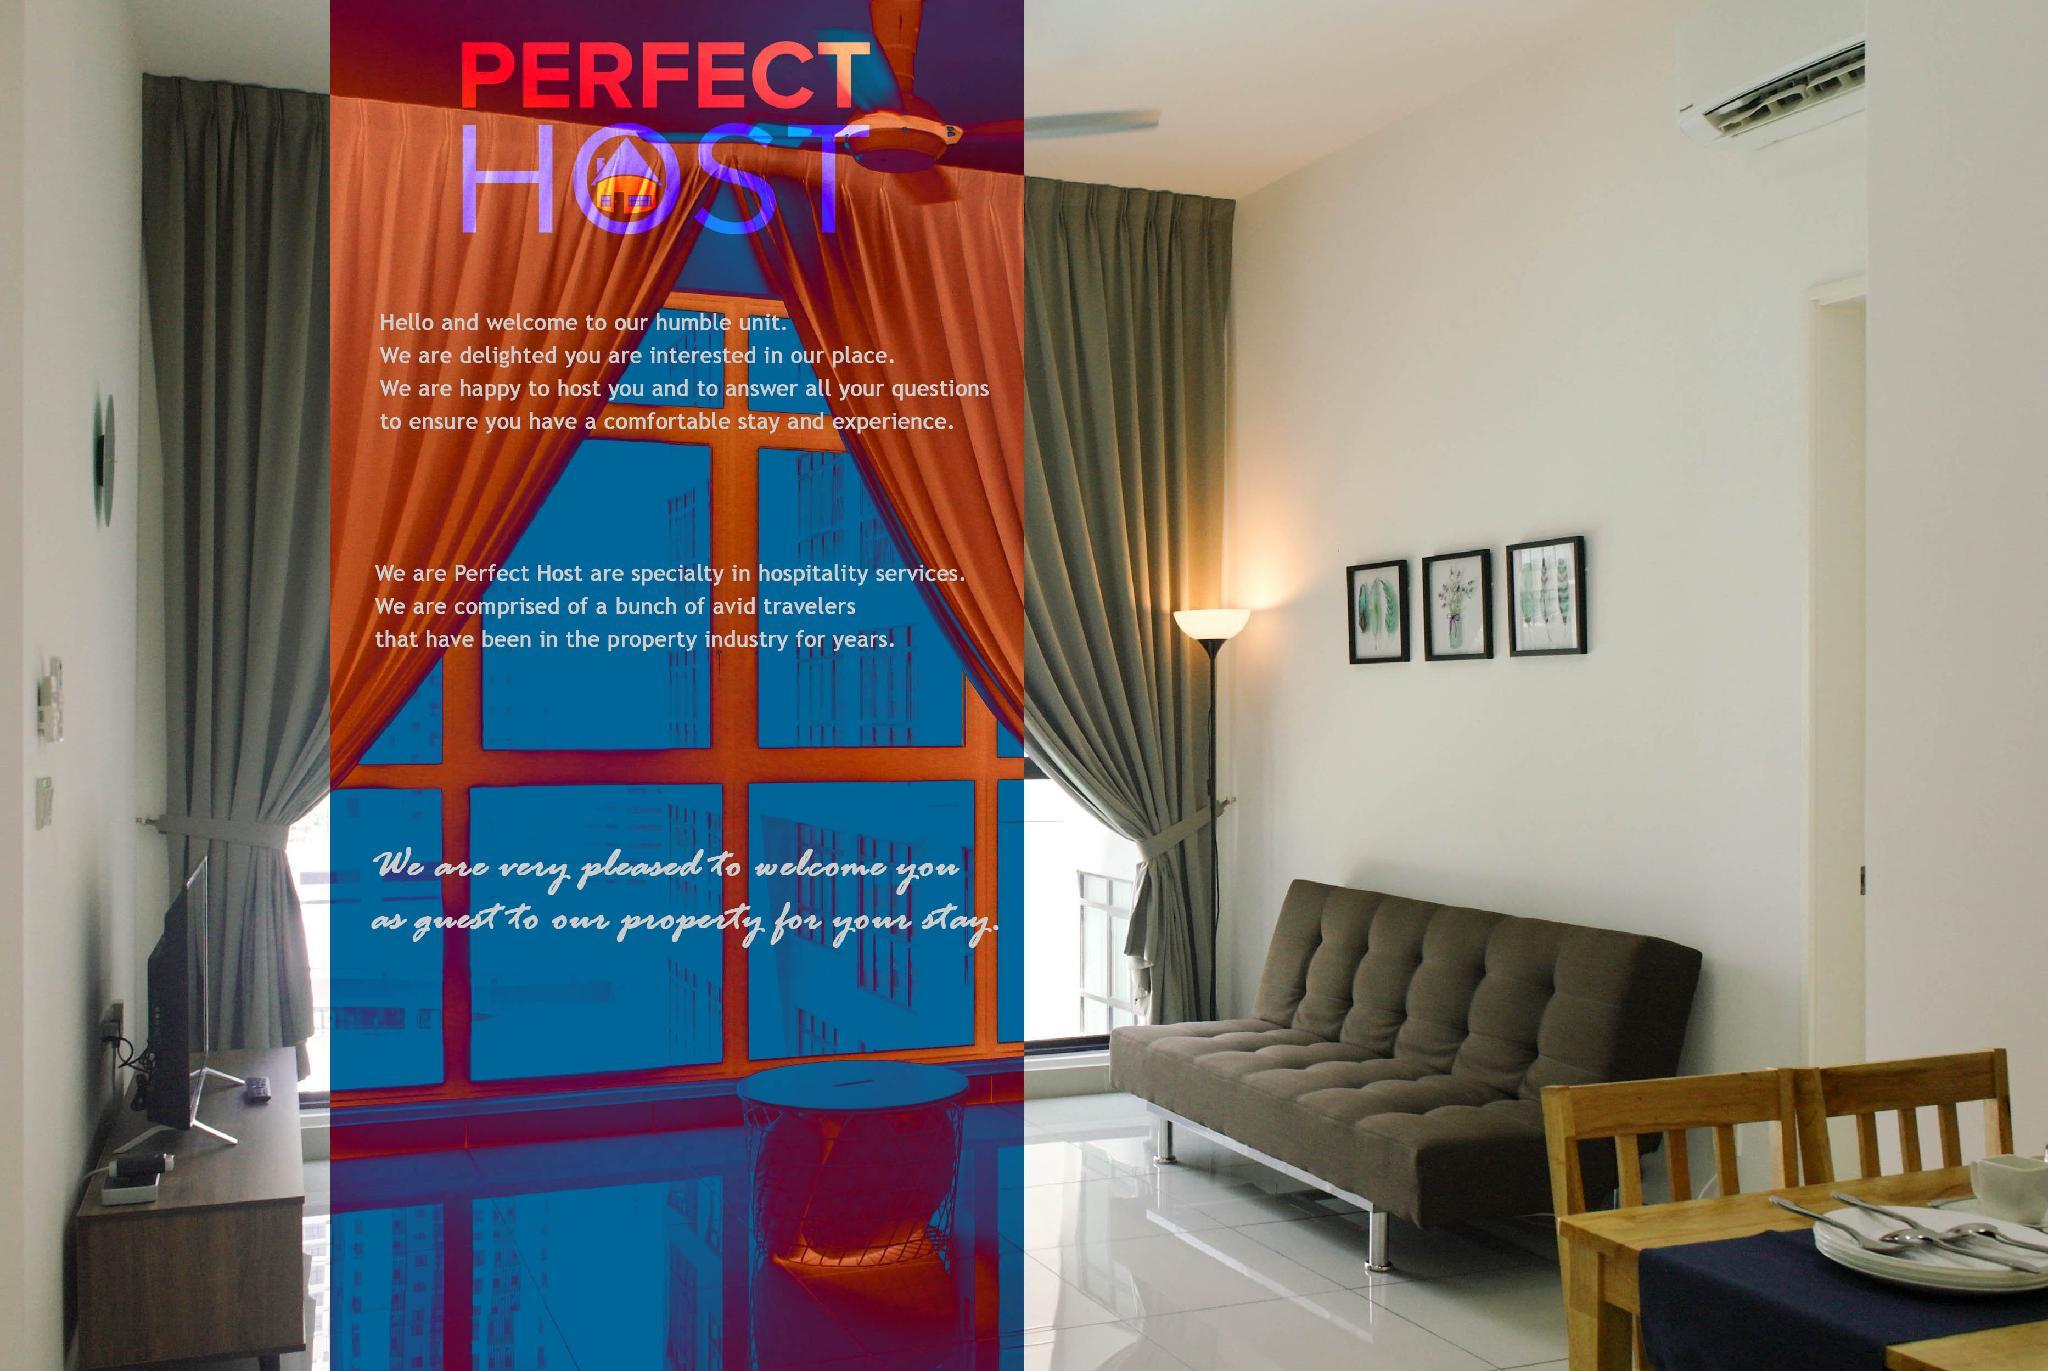 Conezion PP  2 2BR By Perfect Host